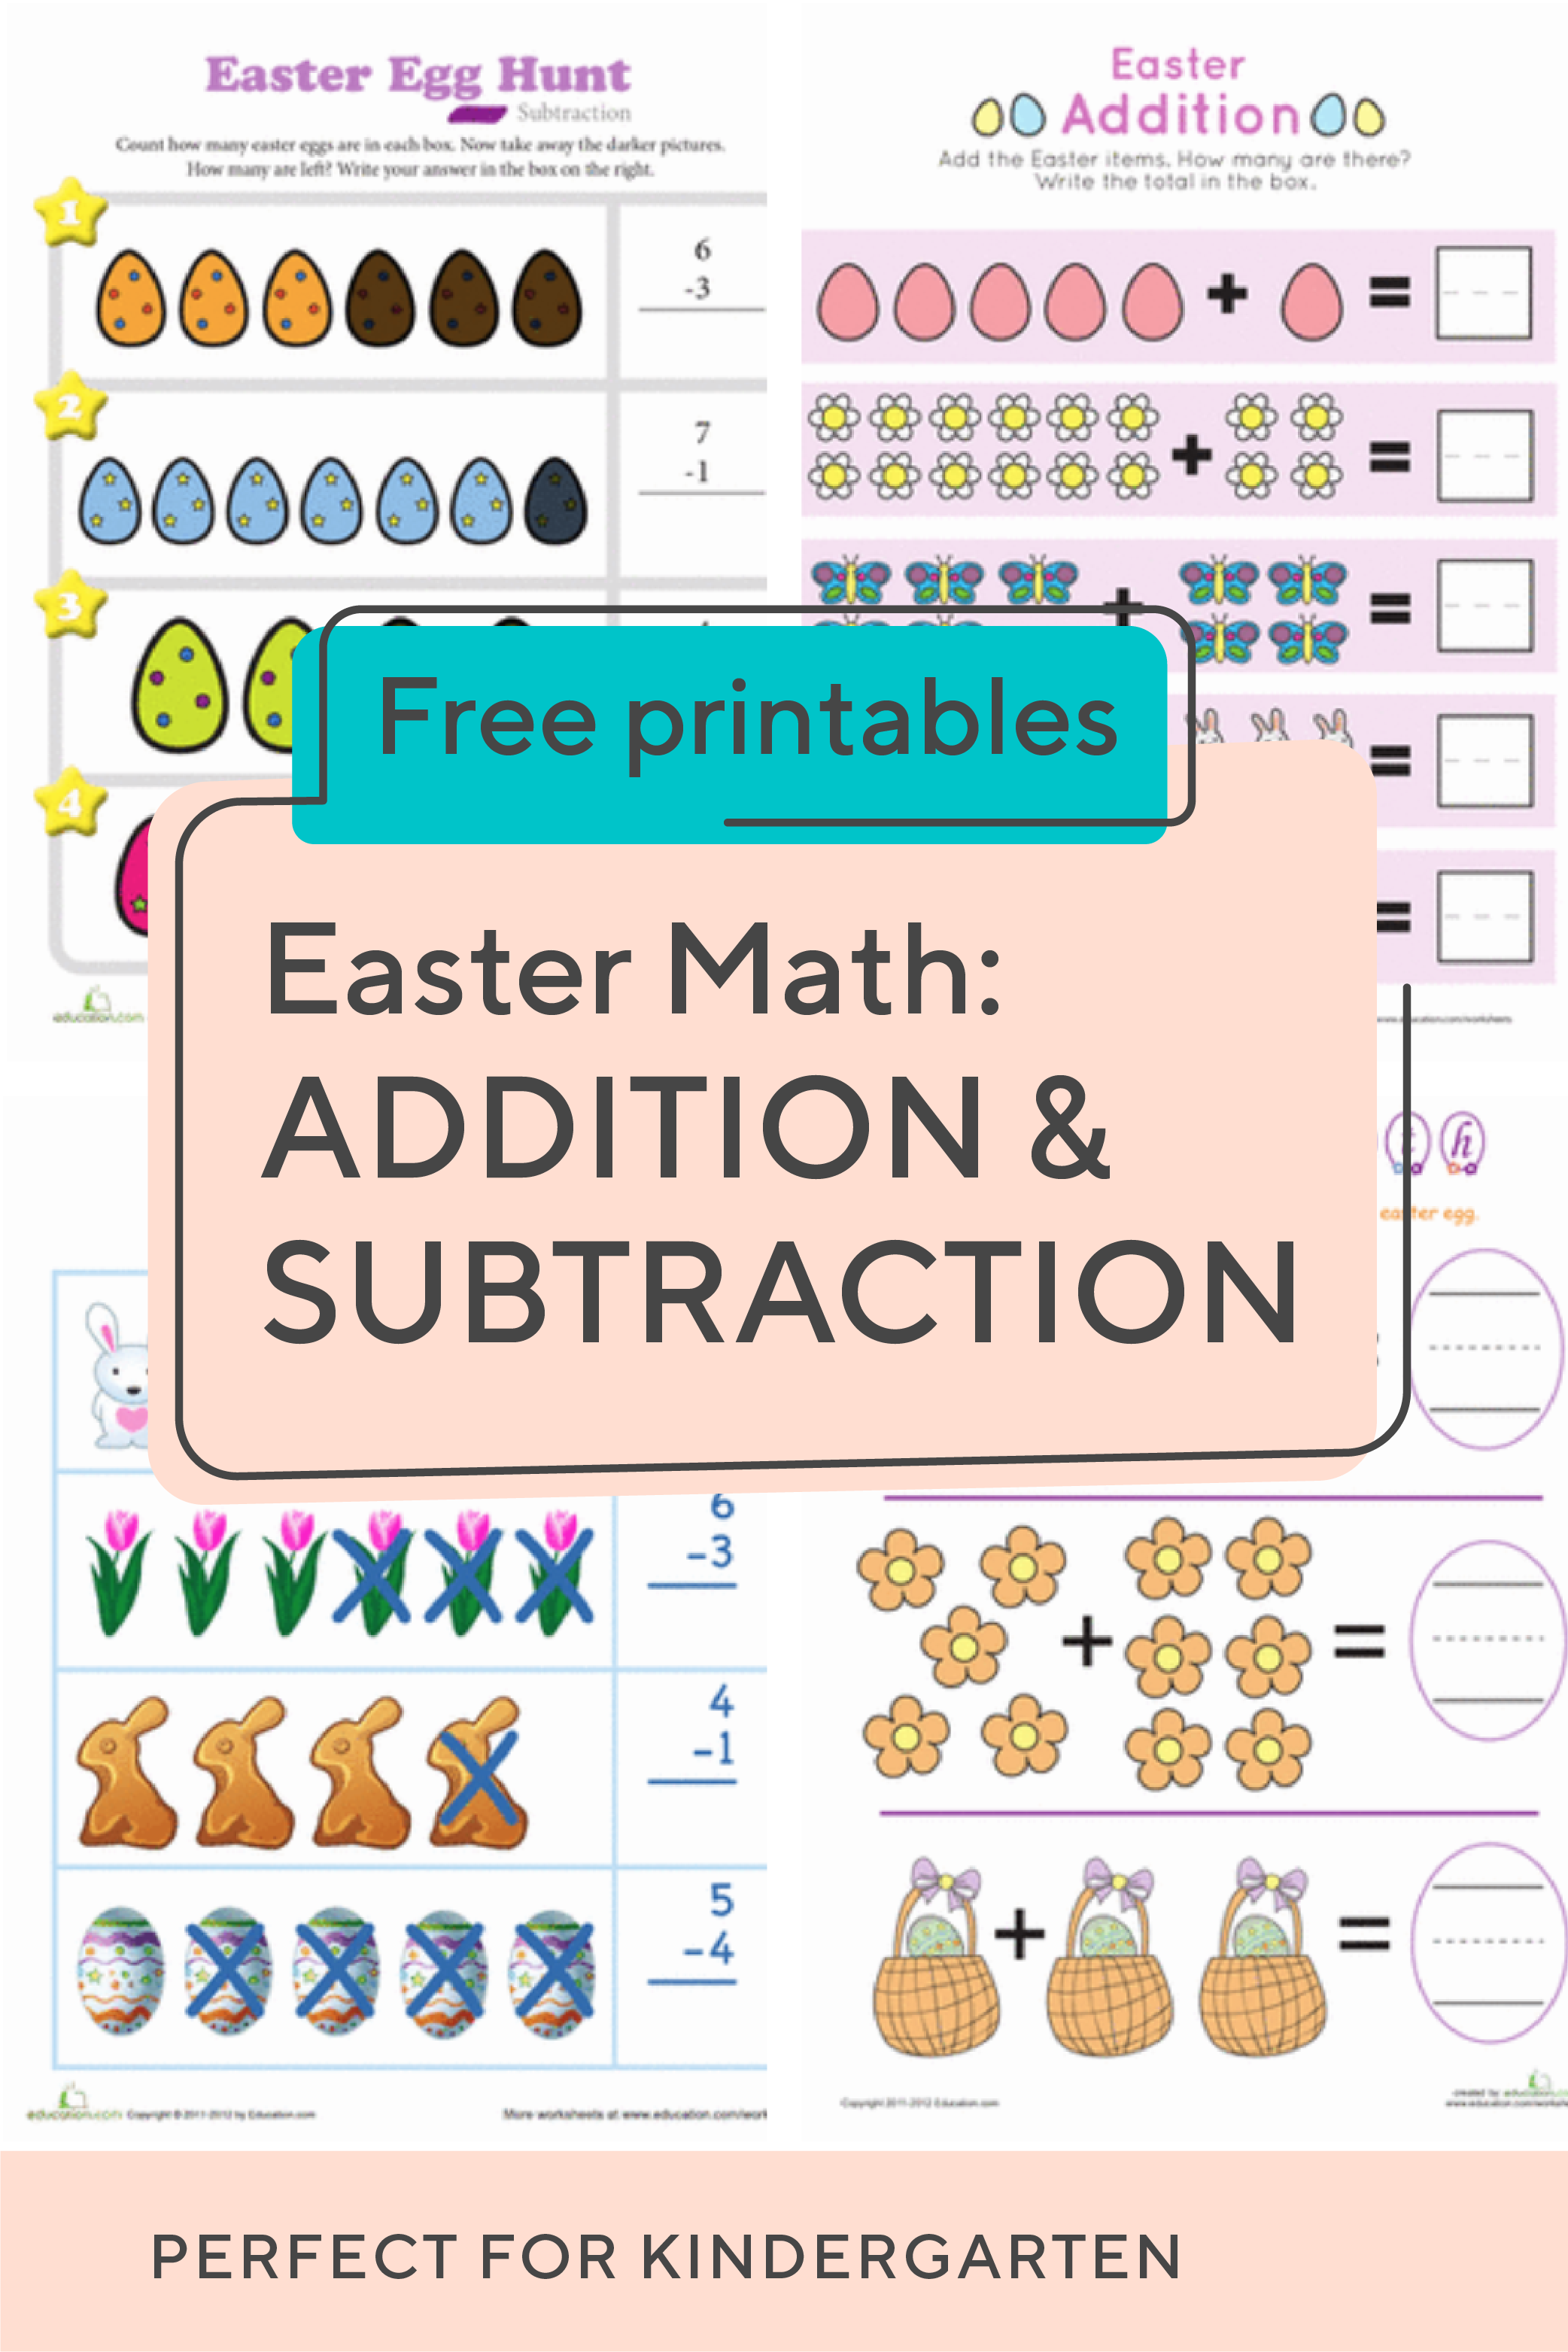 Spring Into The Season With This Collection Of Kindergarten Easter Addition And Subtraction Work Easter Math Addition And Subtraction Teaching Subtraction [ 3126 x 2084 Pixel ]